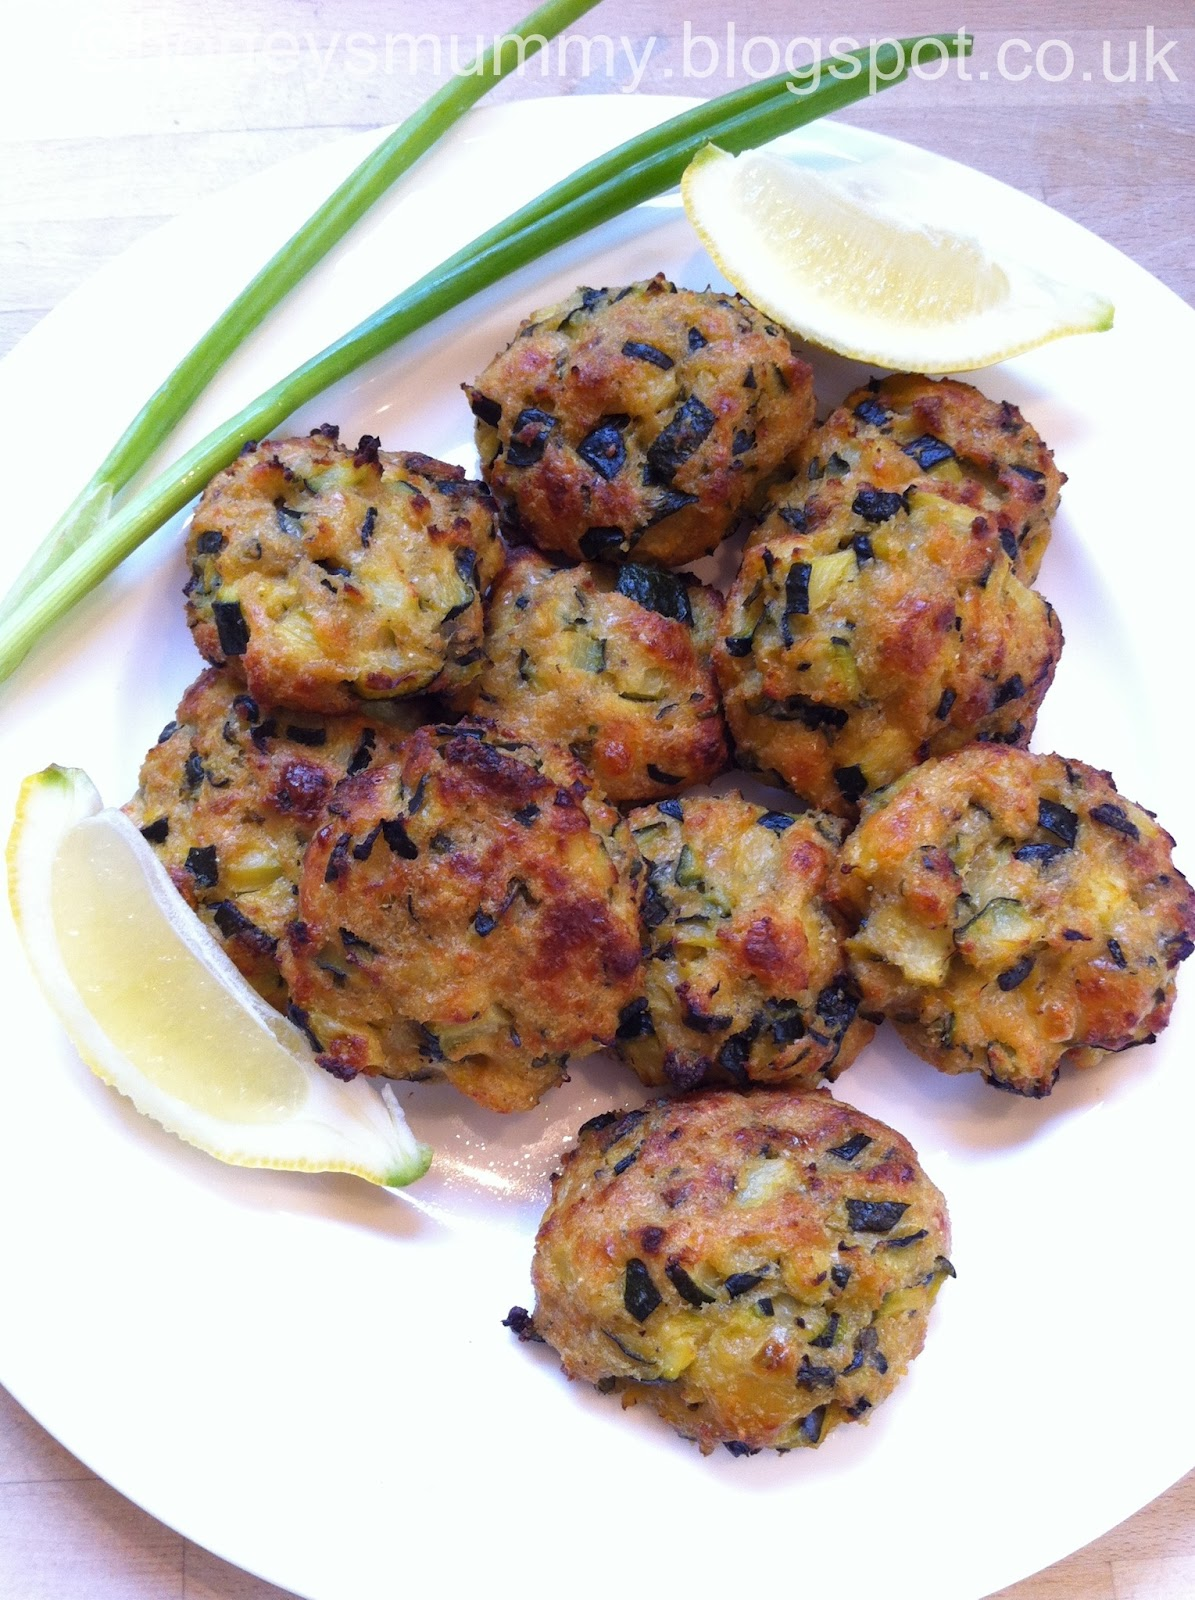 Honey and the dude recipe of the week courgette polpette this recipe is taken from my favourite baby food book of all time river cottage baby toddler cookbook review coming soon i love courgettes i think forumfinder Gallery